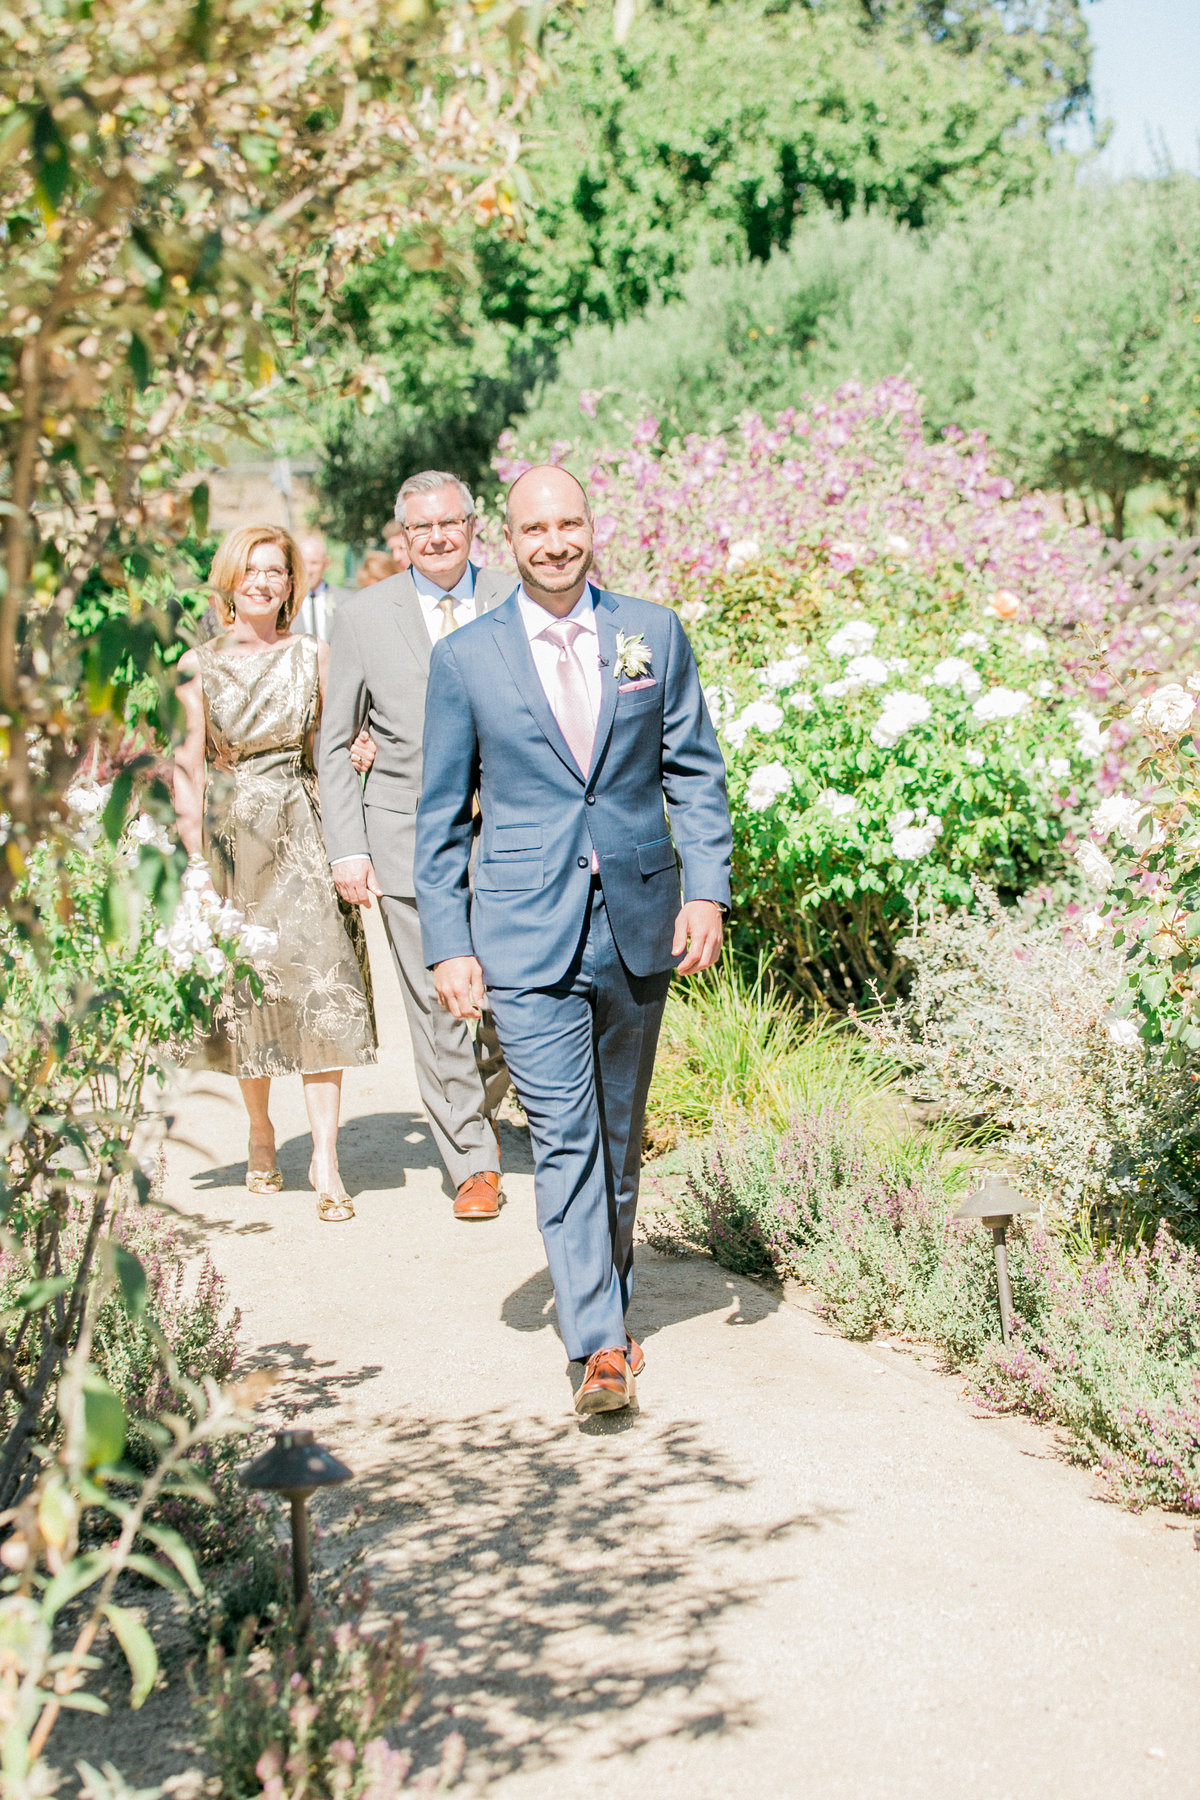 Brix Garden Wedding Ceremony